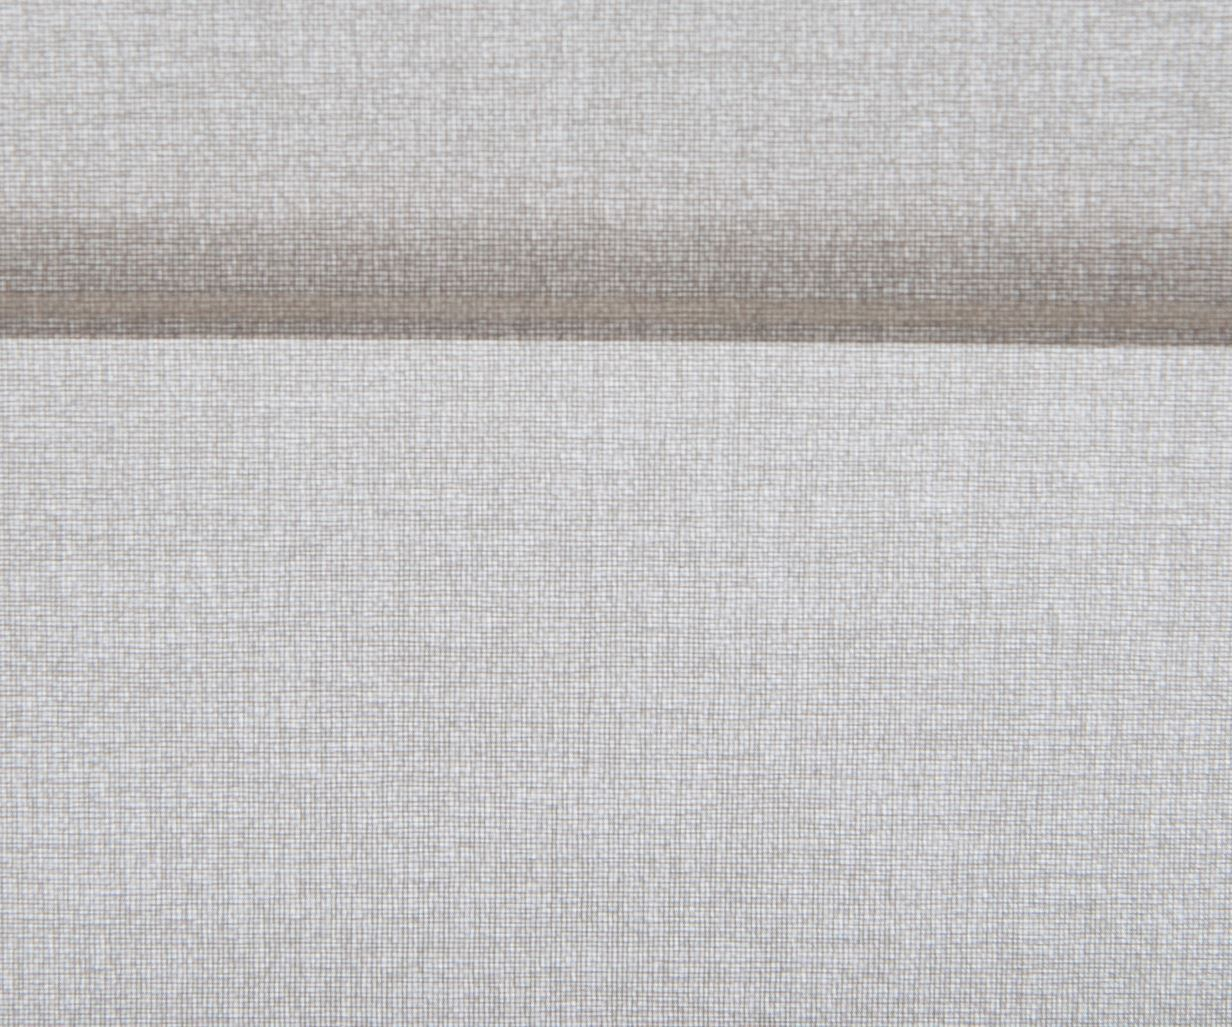 French linen 2-6397